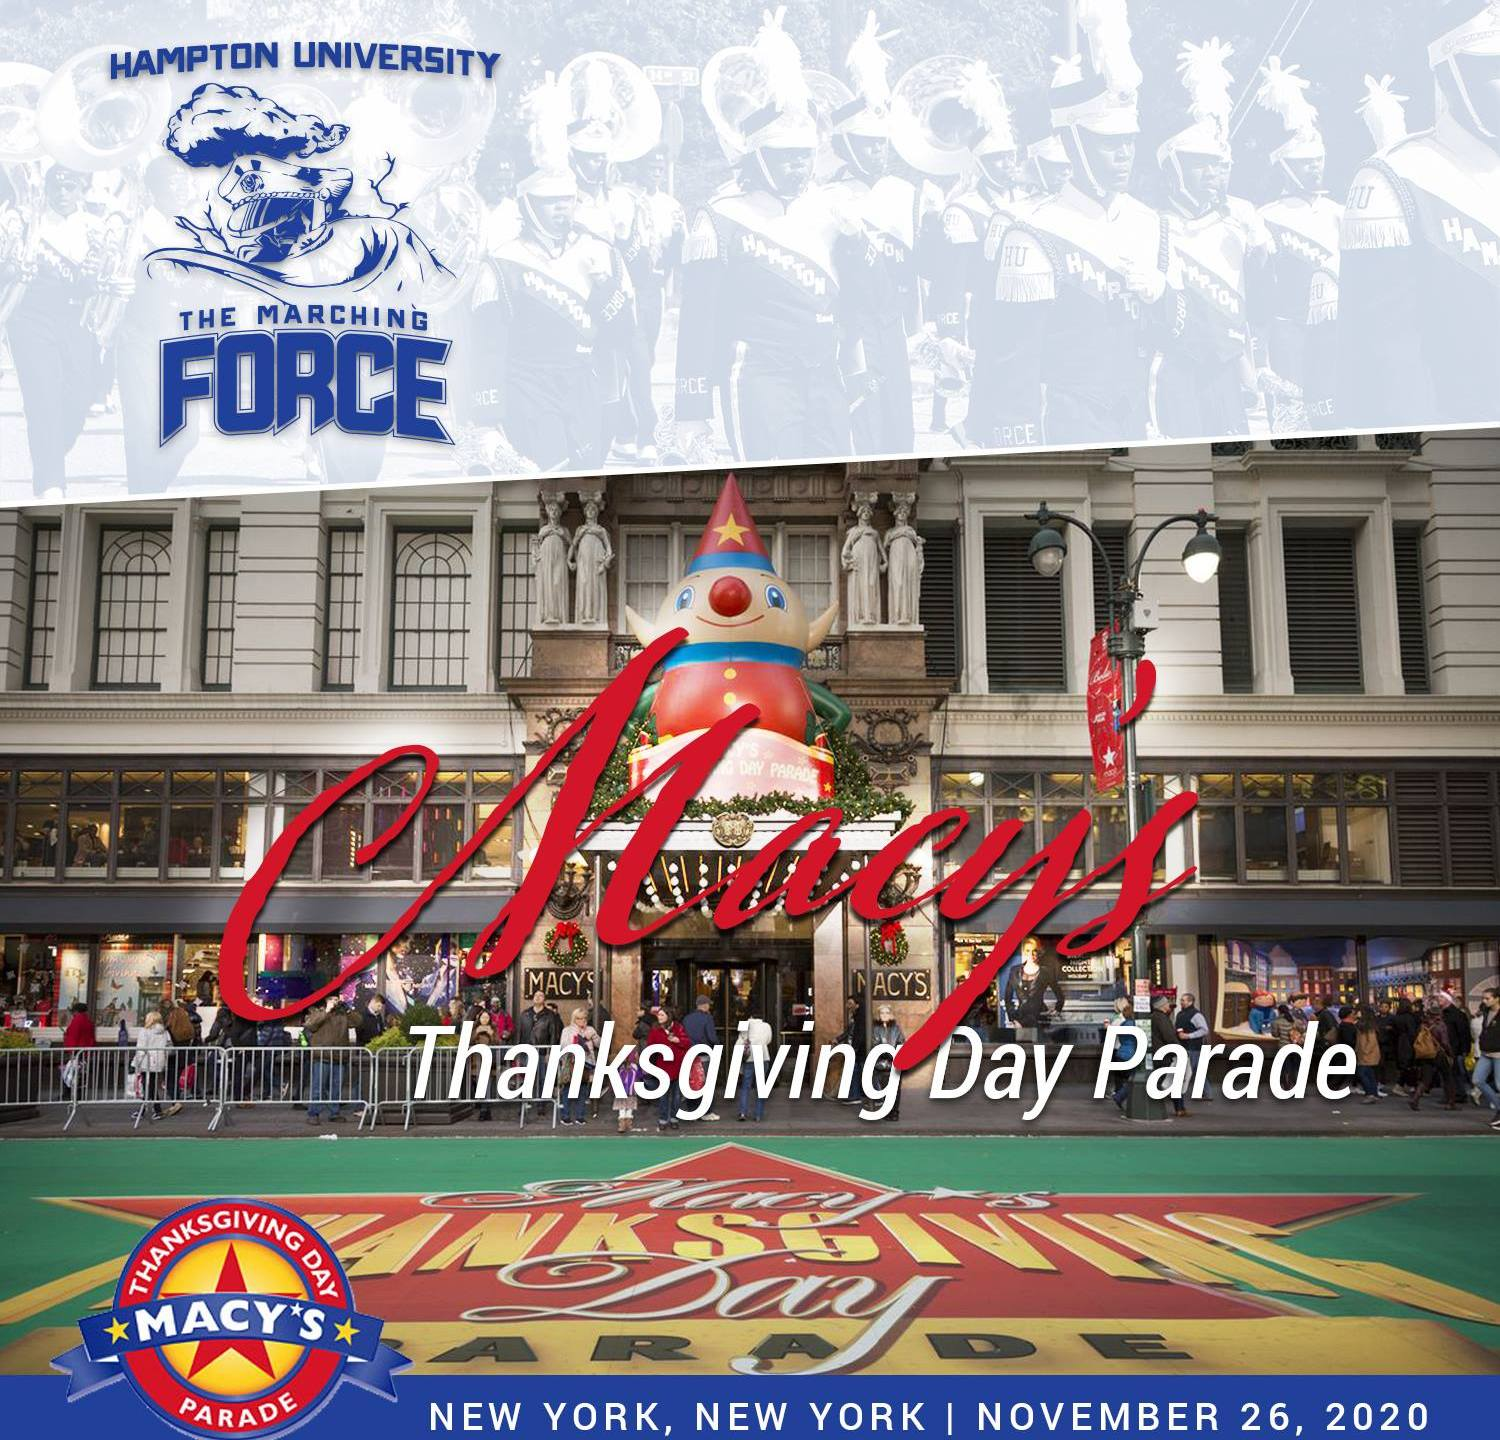 Thanksgiving Parade New York 2020 HU marching band selected to perform in 2020 Macy's Thanksgiving